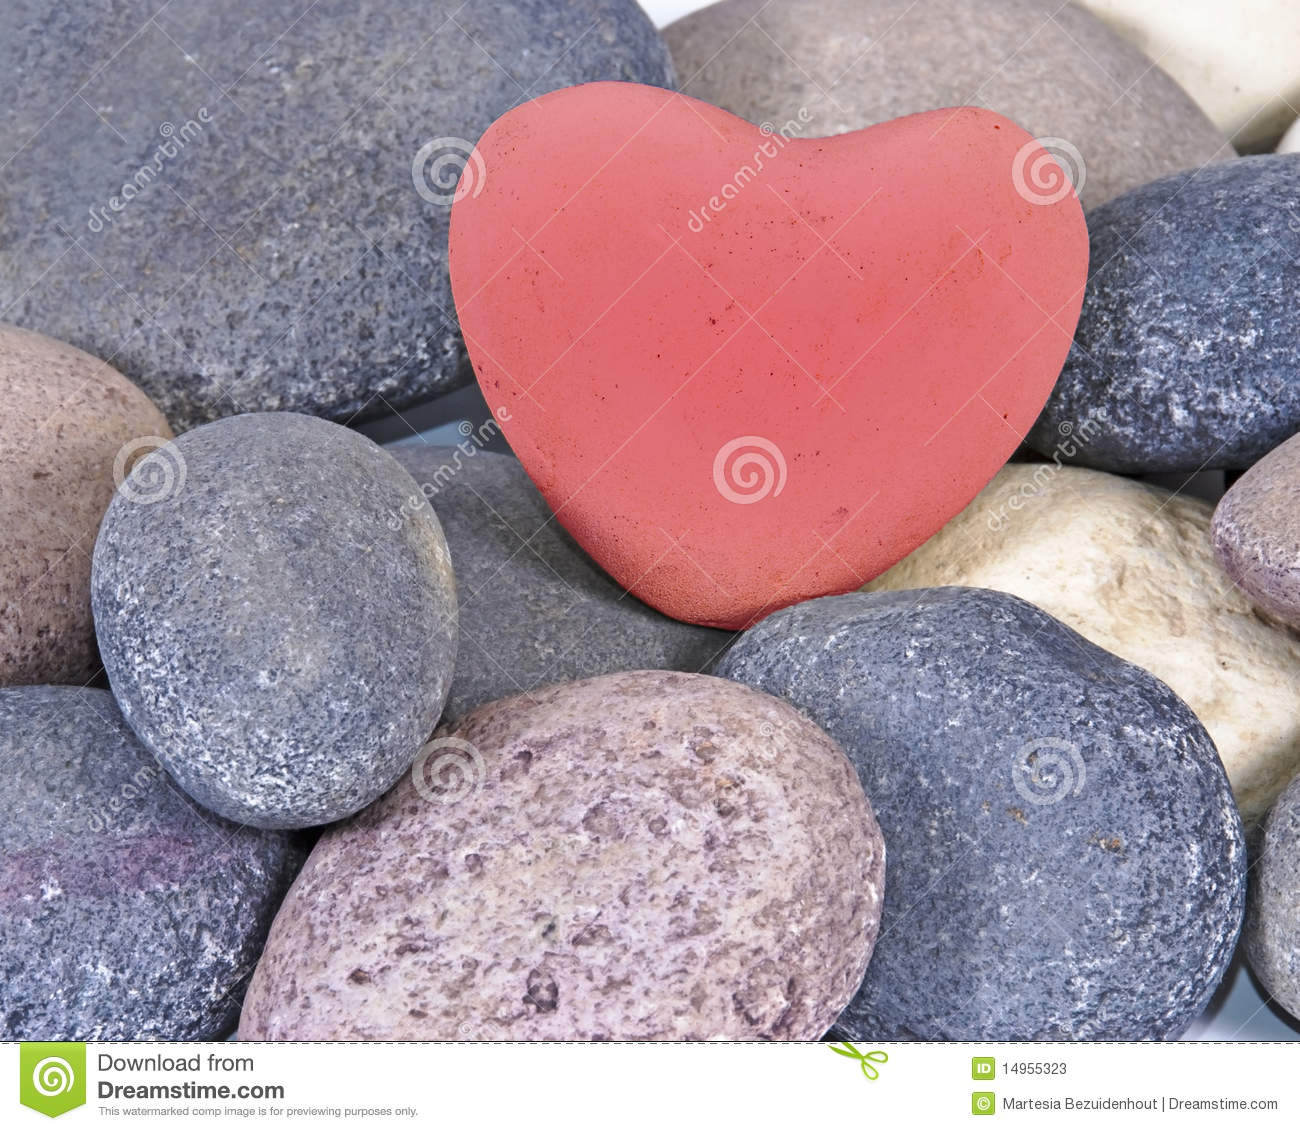 Citaten Hart Van Steen : Stone heart and other stones abstract background royalty